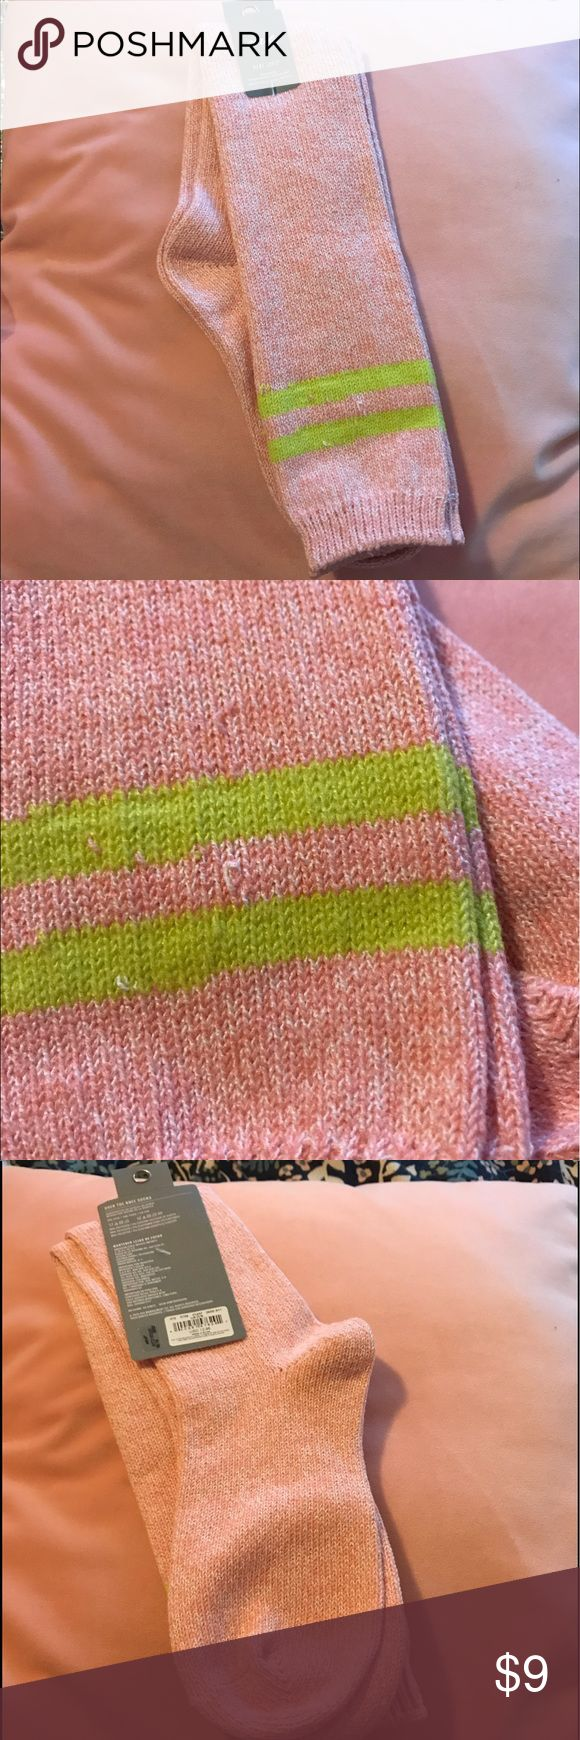 NWT aerie over the knee socks Never worn, tags still attached. Pastel pink with neon yellow detail. Comes over the knee on most people. Super soft and comfy. Don't forget to ask any questions you may have. I also offer 20% off all bundles of two or more listings. aerie Accessories Hosiery & Socks